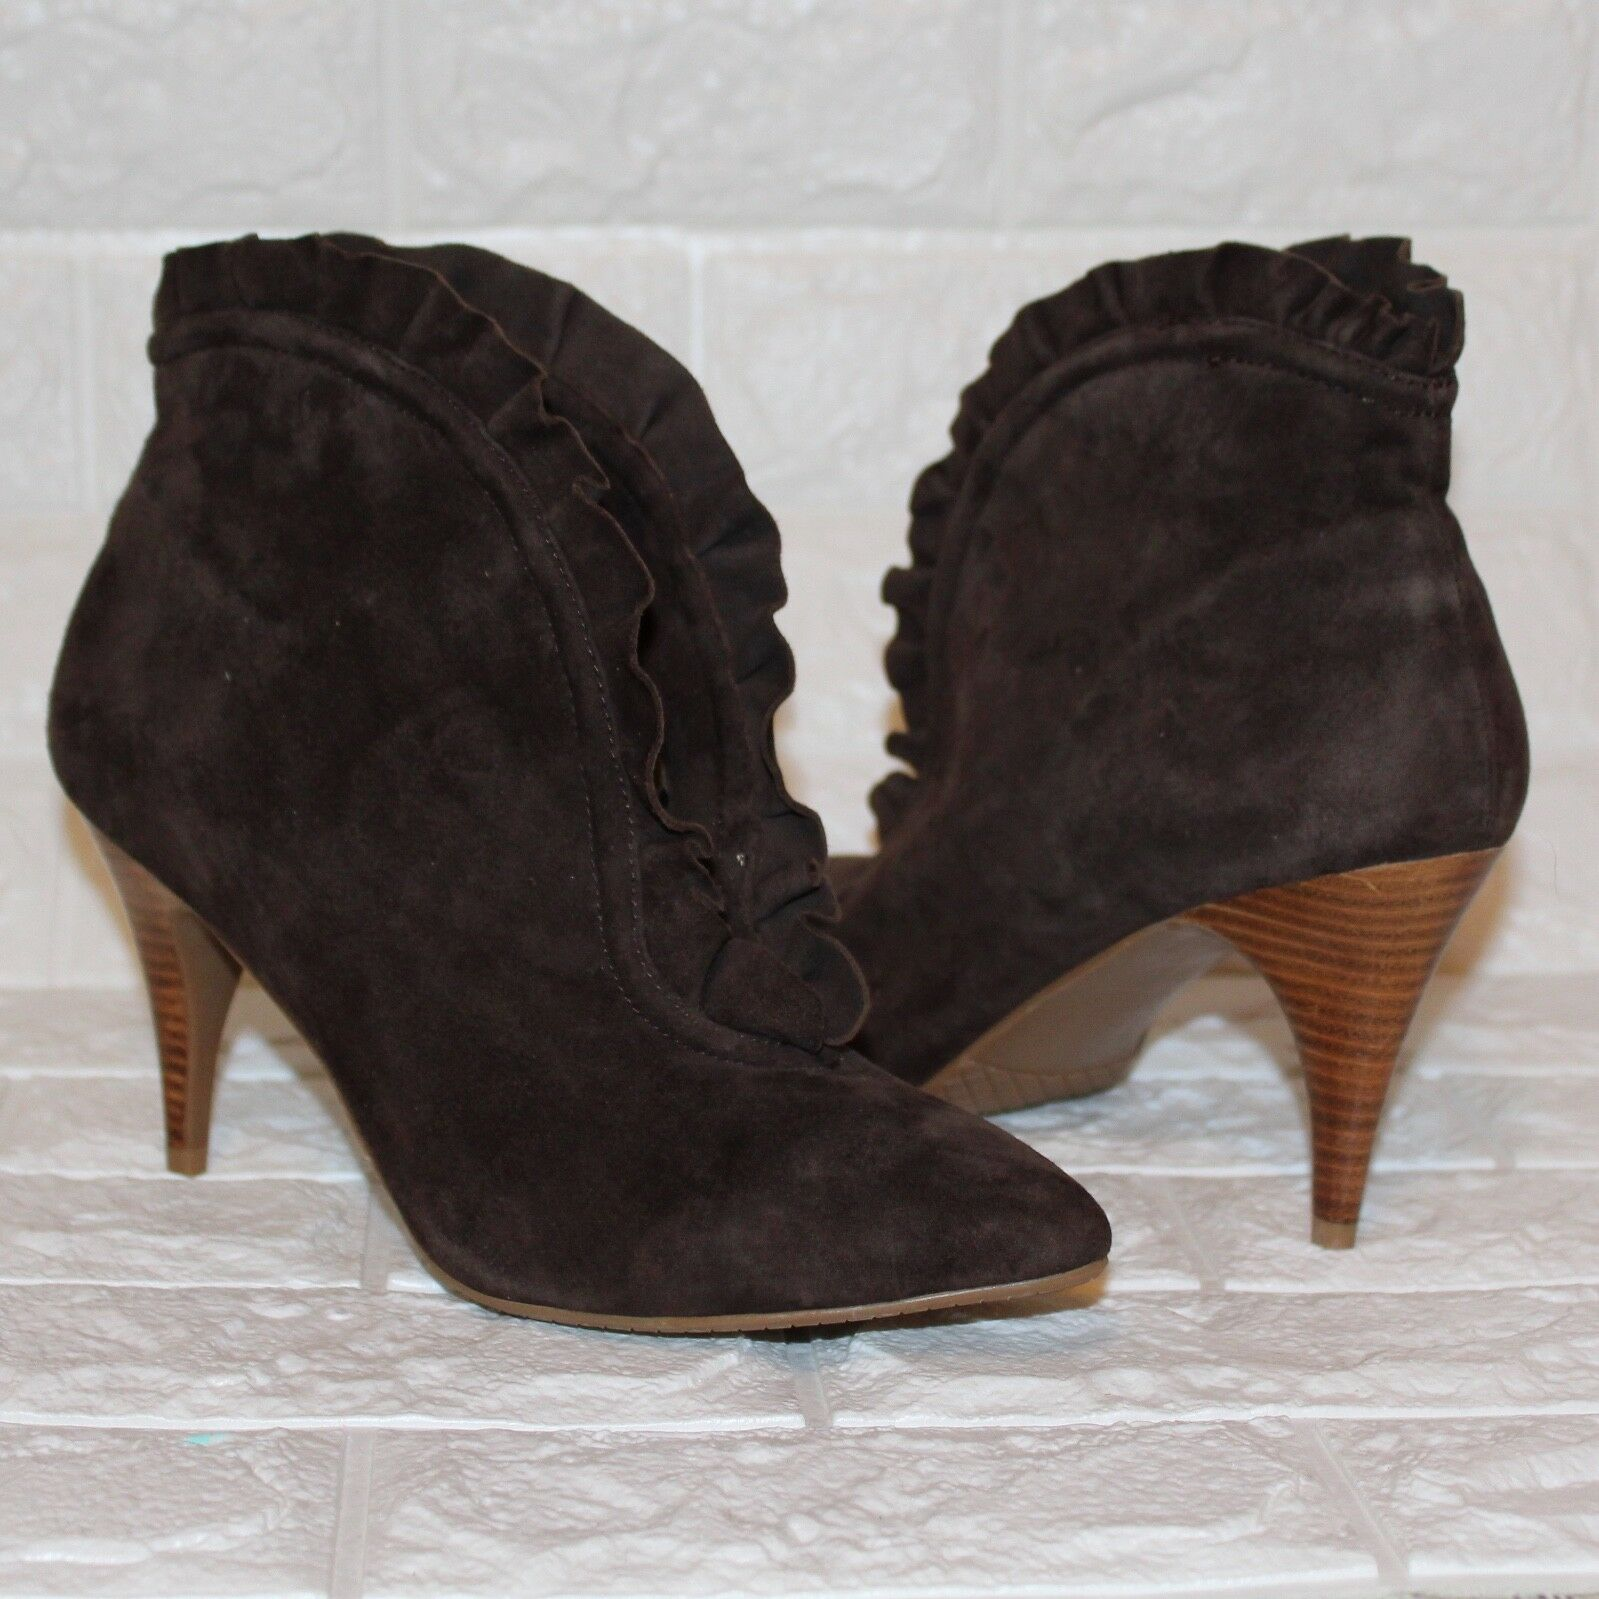 New Leder Lovely People Braun Suede Leder New Ruffled Ankle Booties Schuhes Größe 10M 02ce07